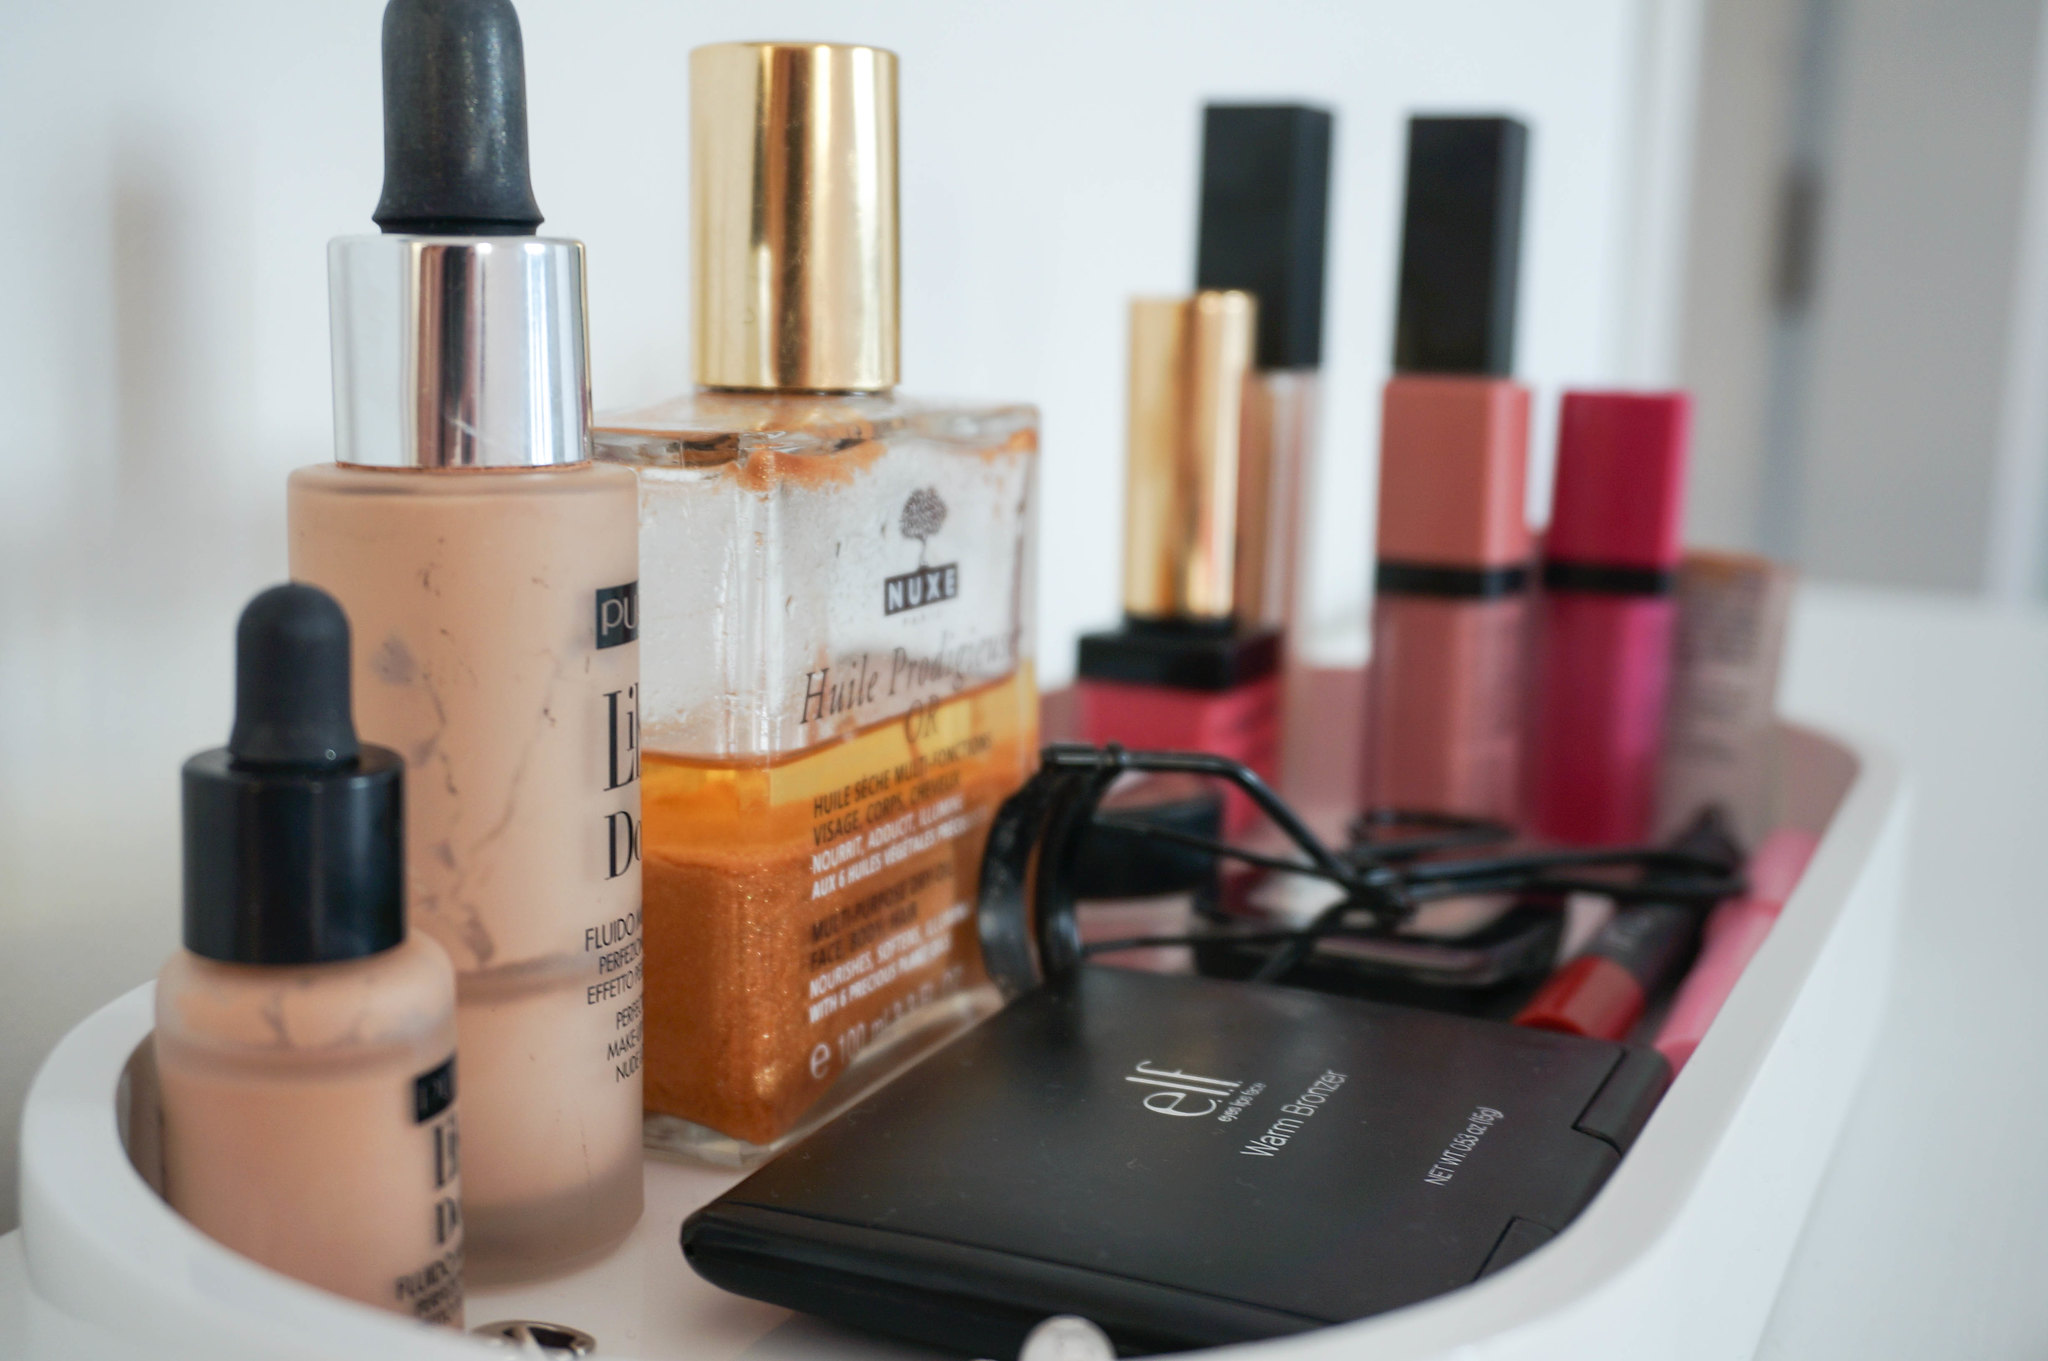 nuxe-pupa-makeup-milano-ysl-kiss-and-blush-elf-warm-bronzer-like-a-doll-fluid-foundation-nars-cruella-makeup-store-bourjois